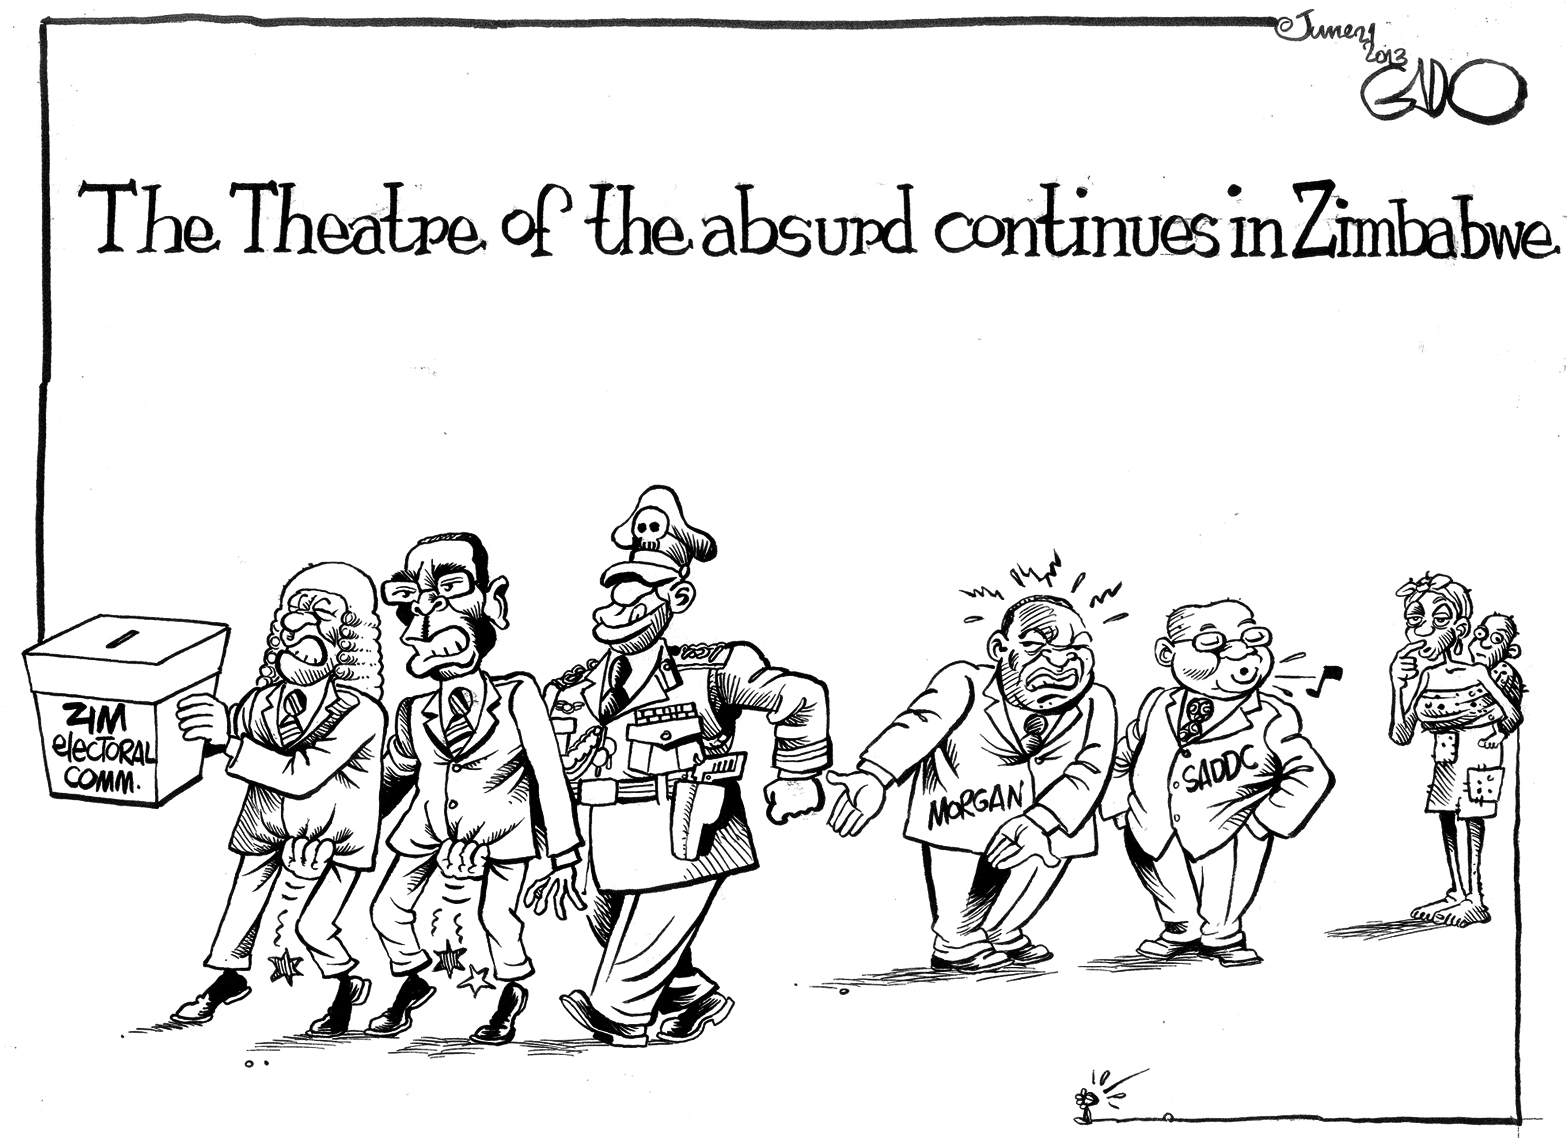 The Theatre of the Absurd continues in Zimbabwe - Gado